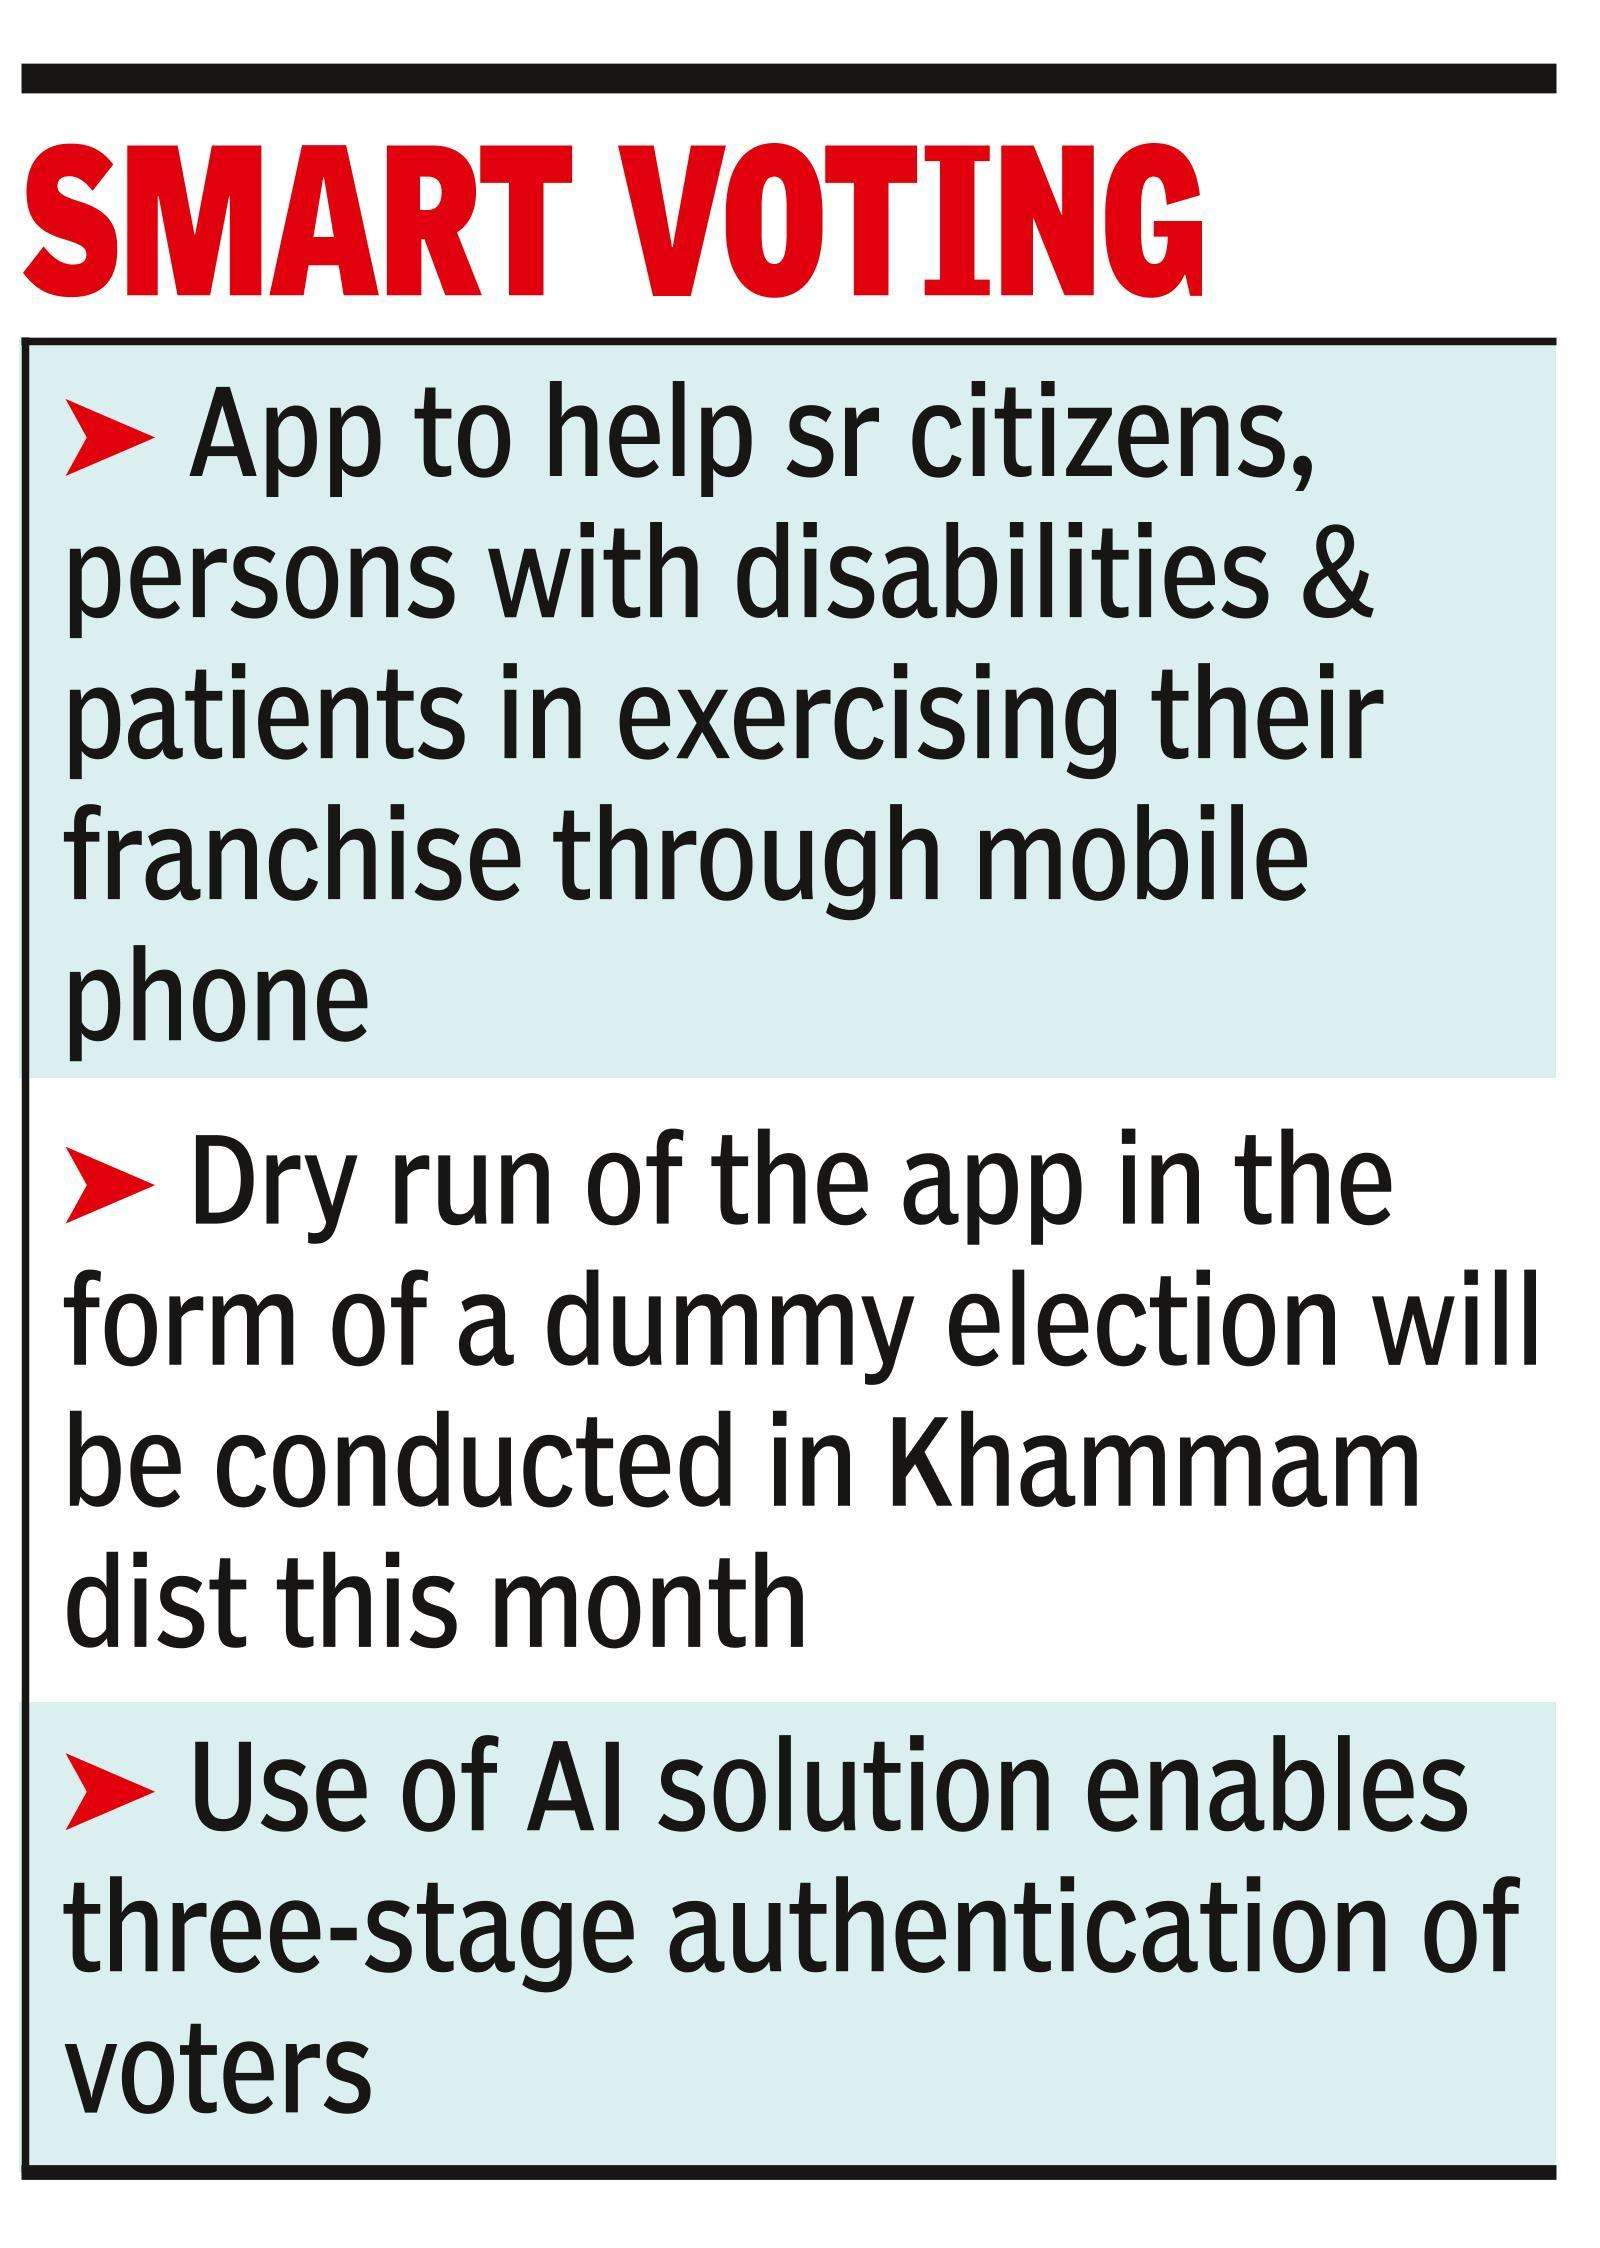 First in India, Telangana develops smartphone-based e-voting app